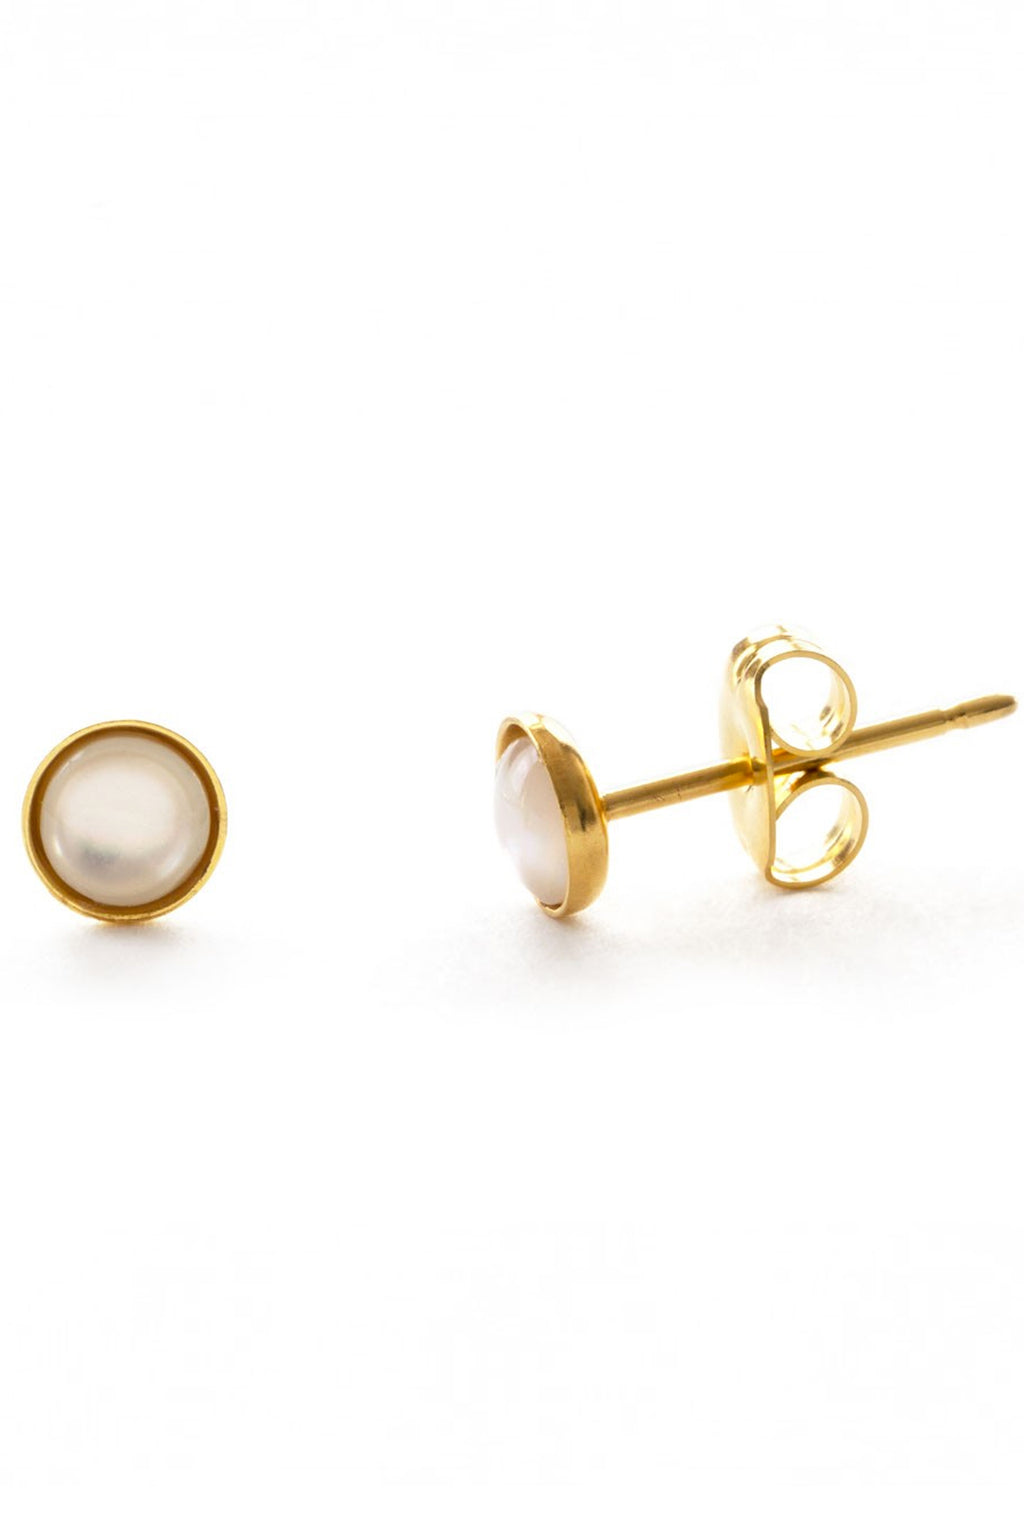 Amano Mother Of Pearl Studs - The Mercantile London